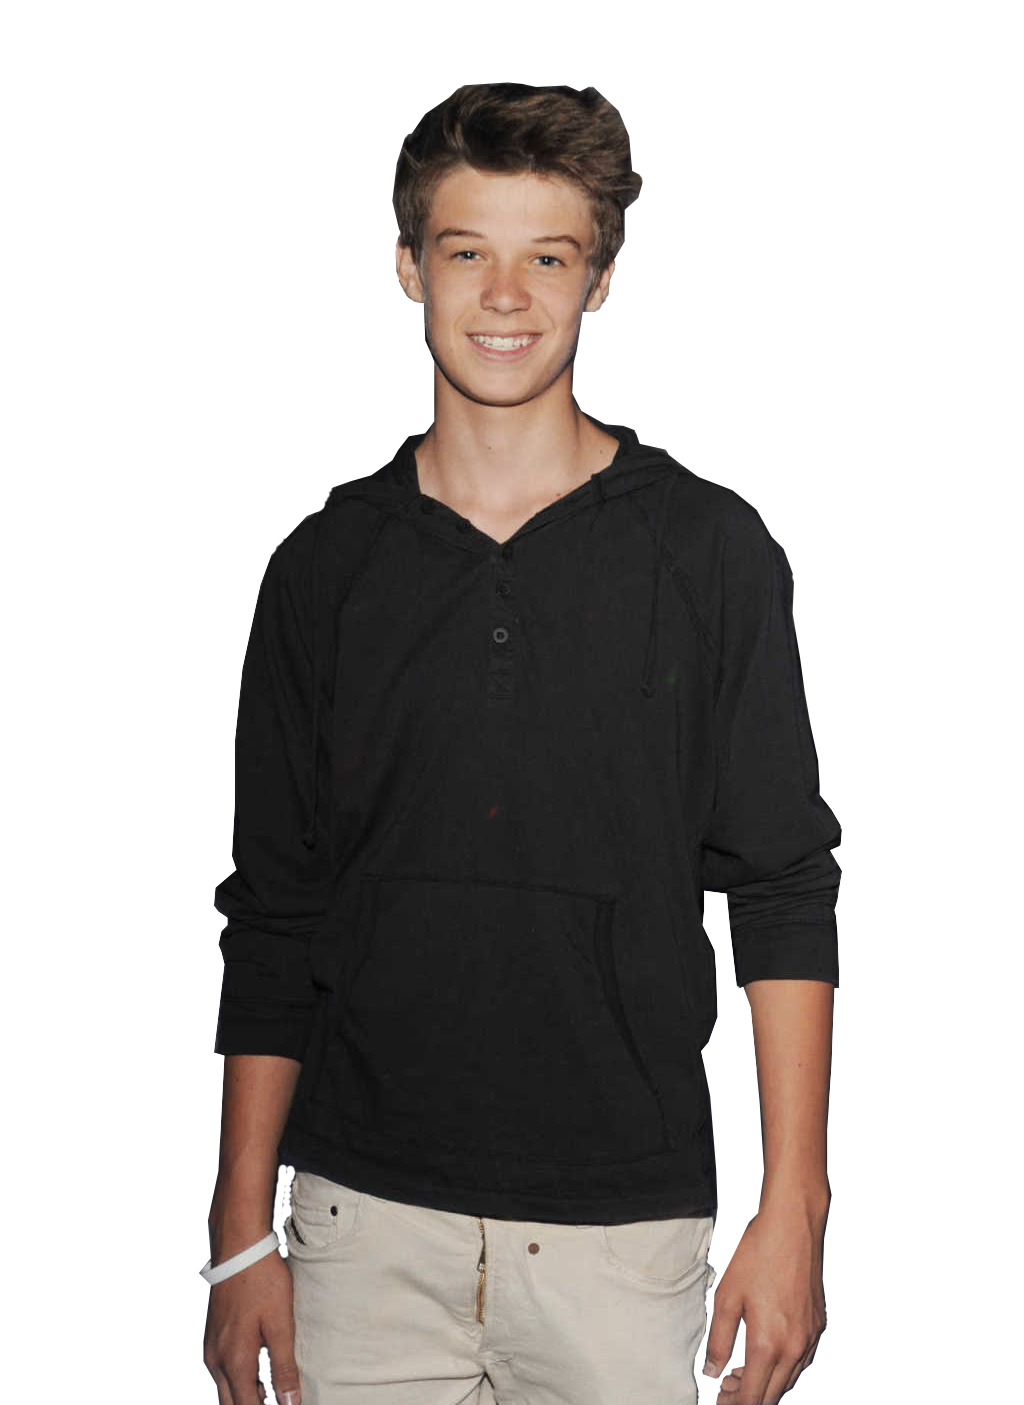 Colin ford png. Your internet stocker